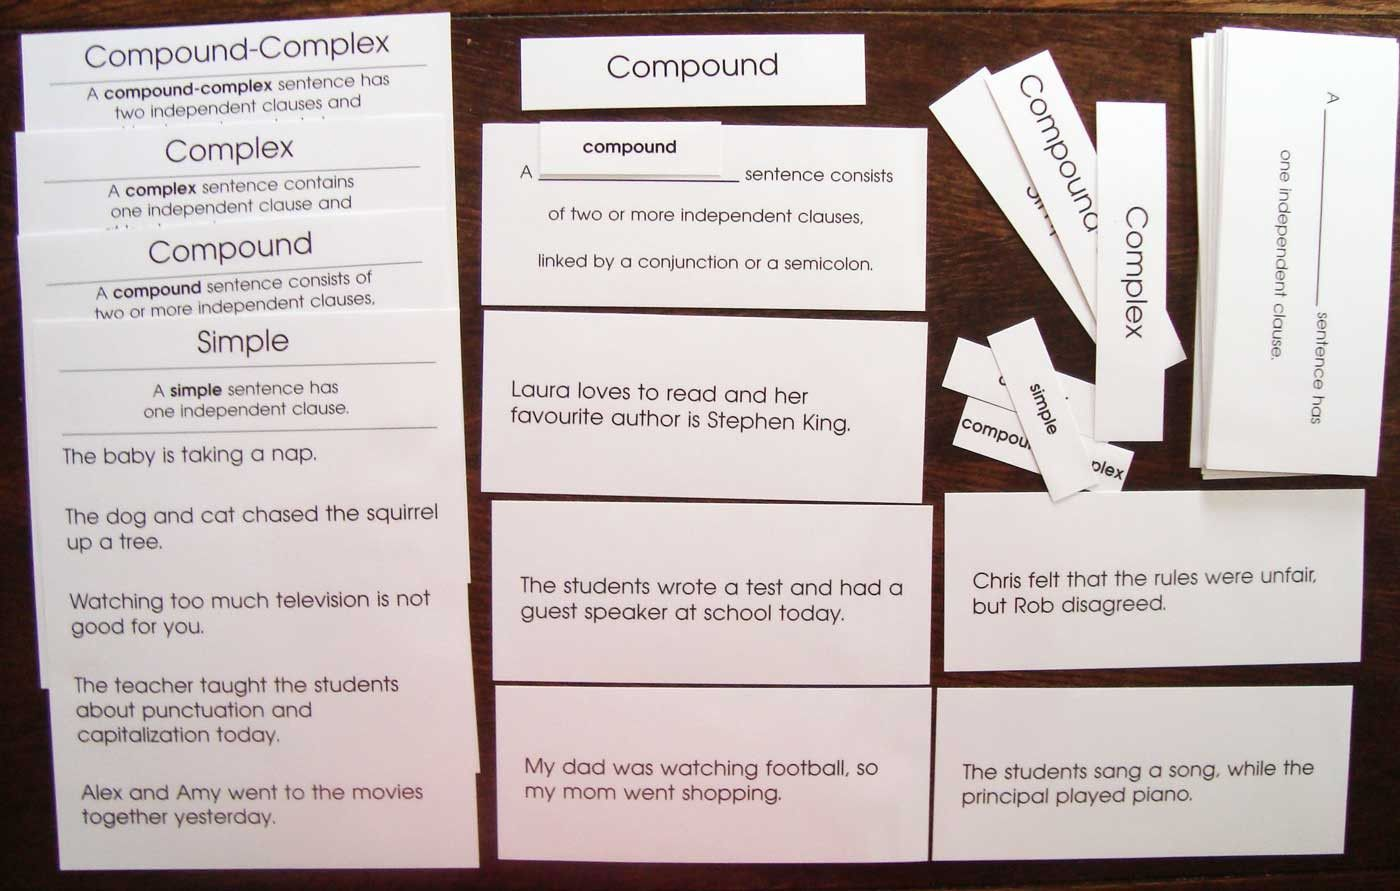 definitions and examples of simple compound complex and compoundcomplex sentences includes title cards definition cards and five sentence cards for